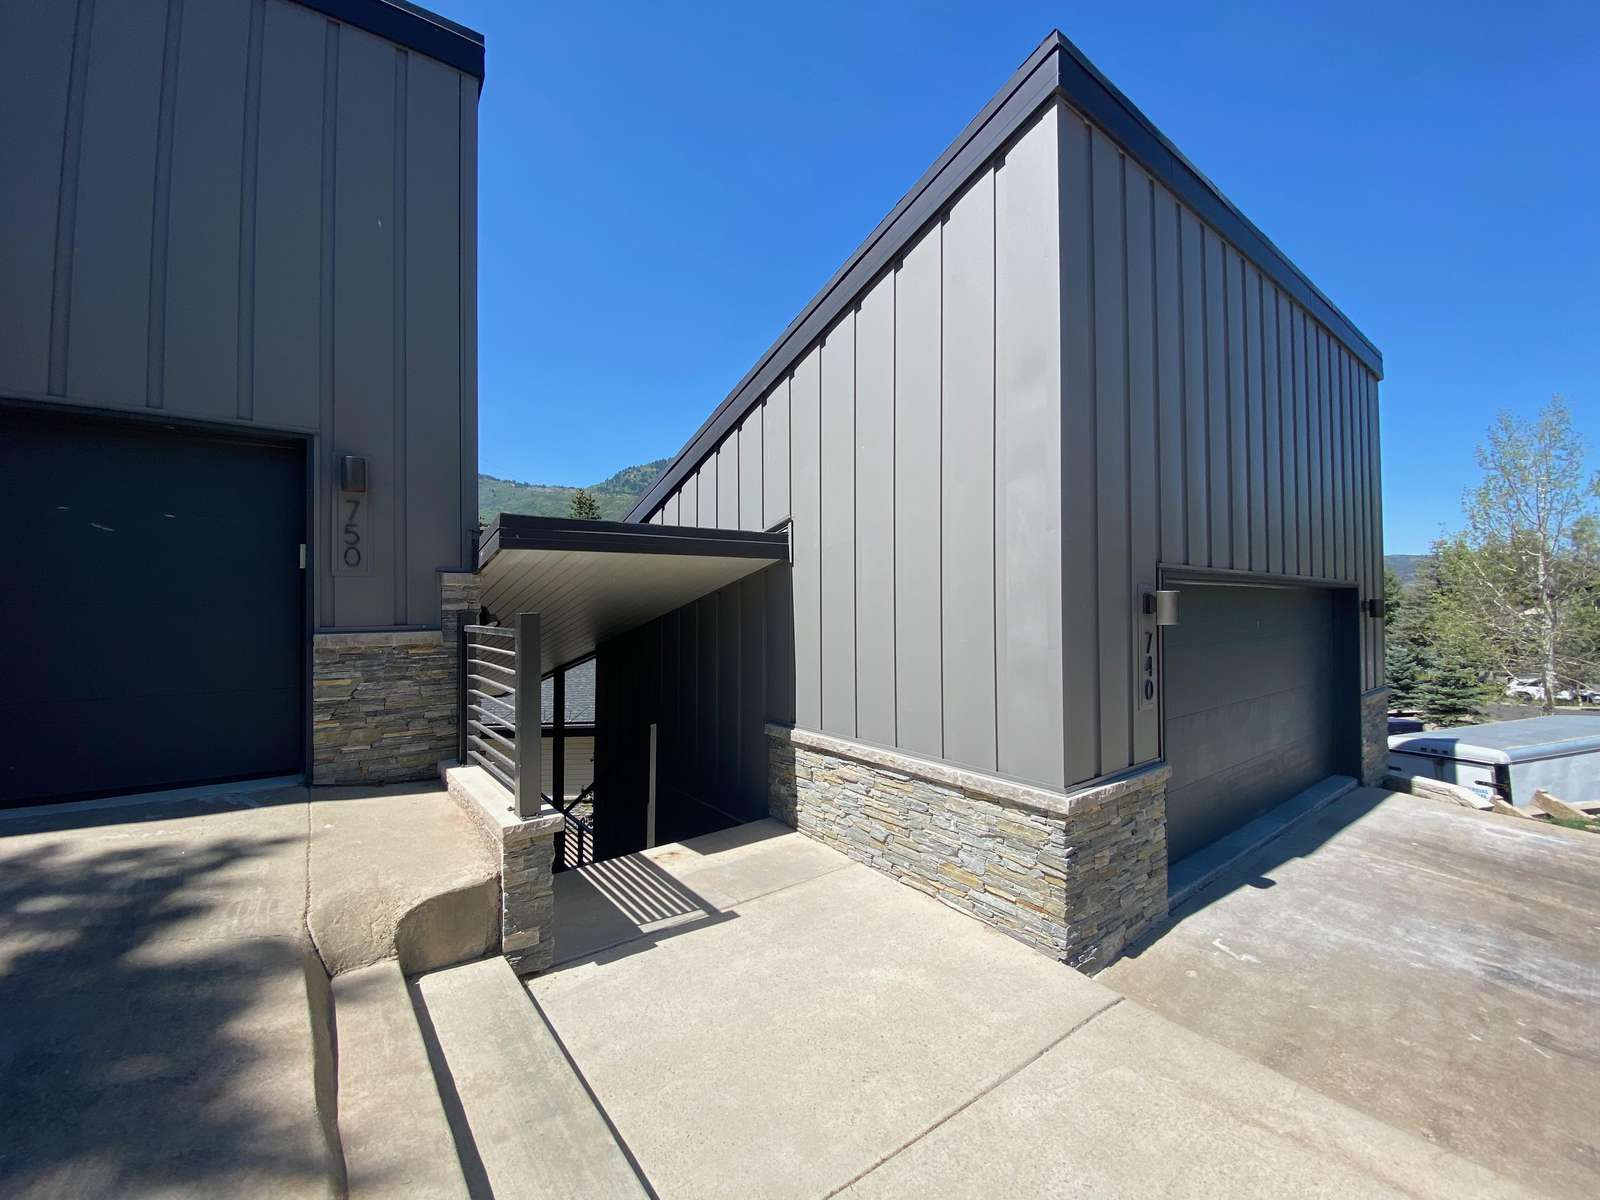 Garage and parking in the driveway